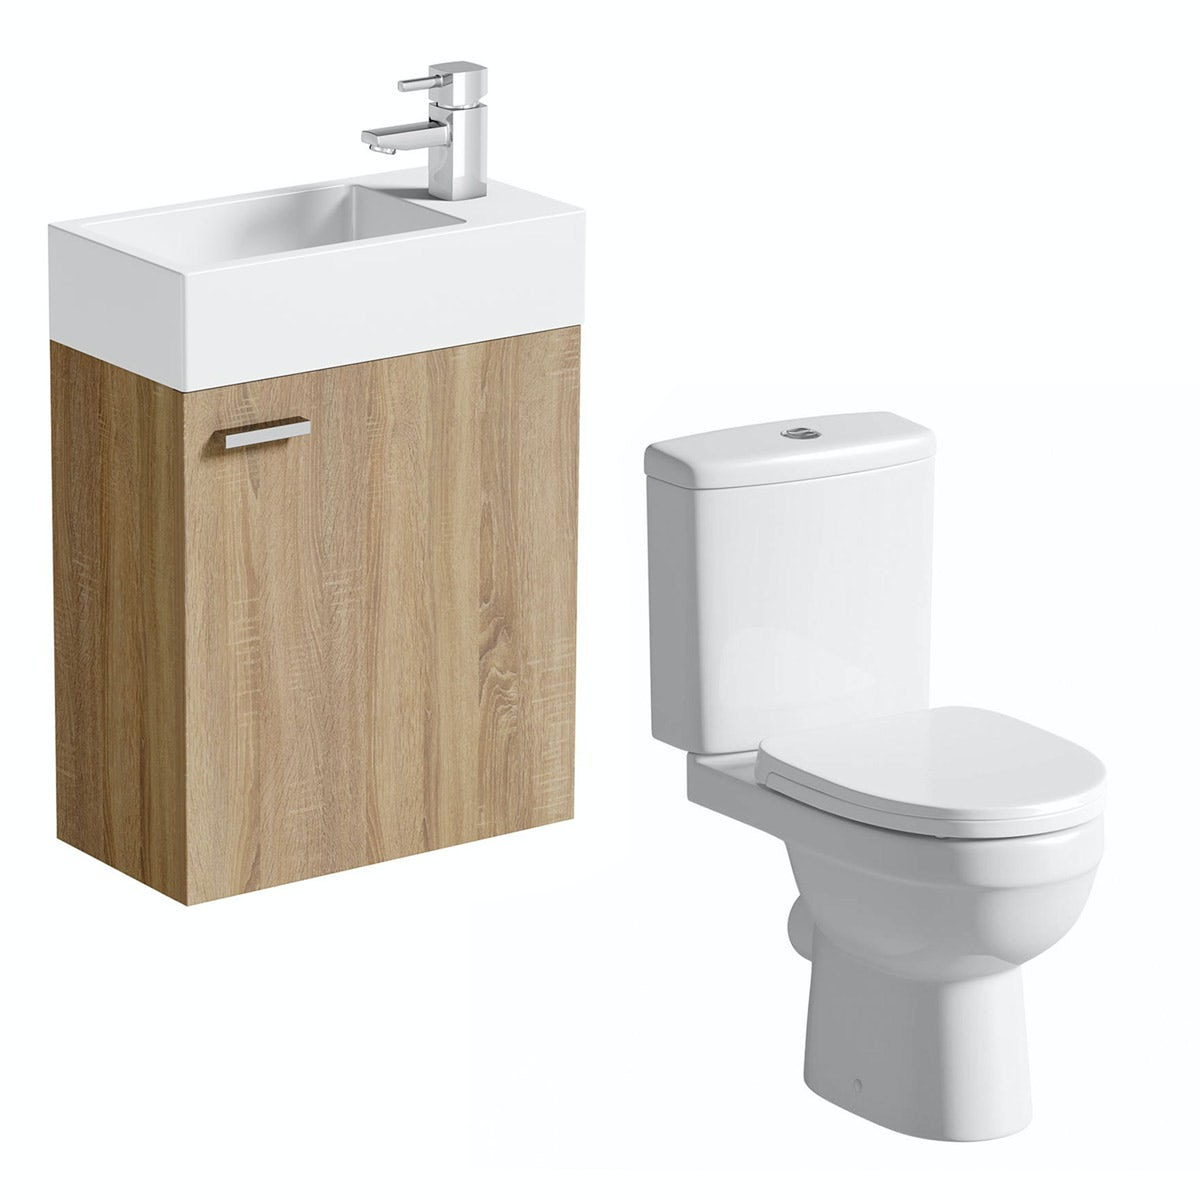 Clarity Compact oak wall hung cloakroom suite with contemporary close coupled toilet